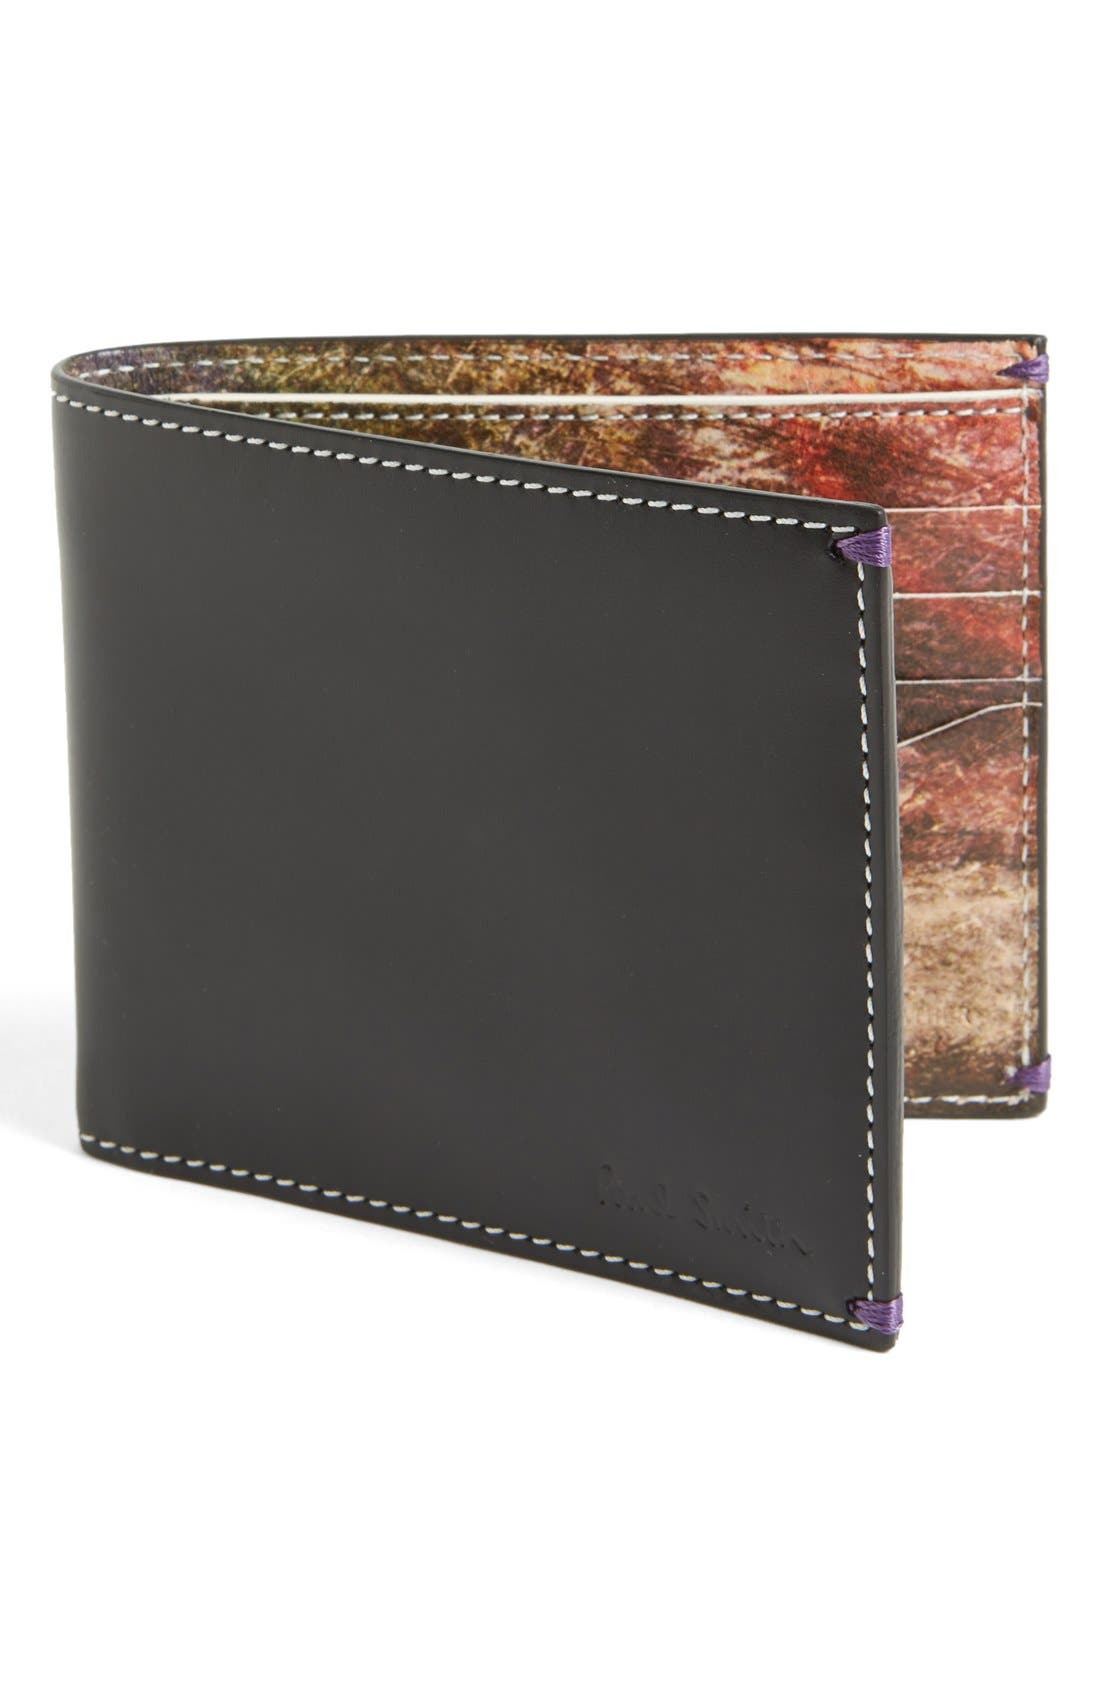 Main Image - Paul Smith Car Print Leather Wallet